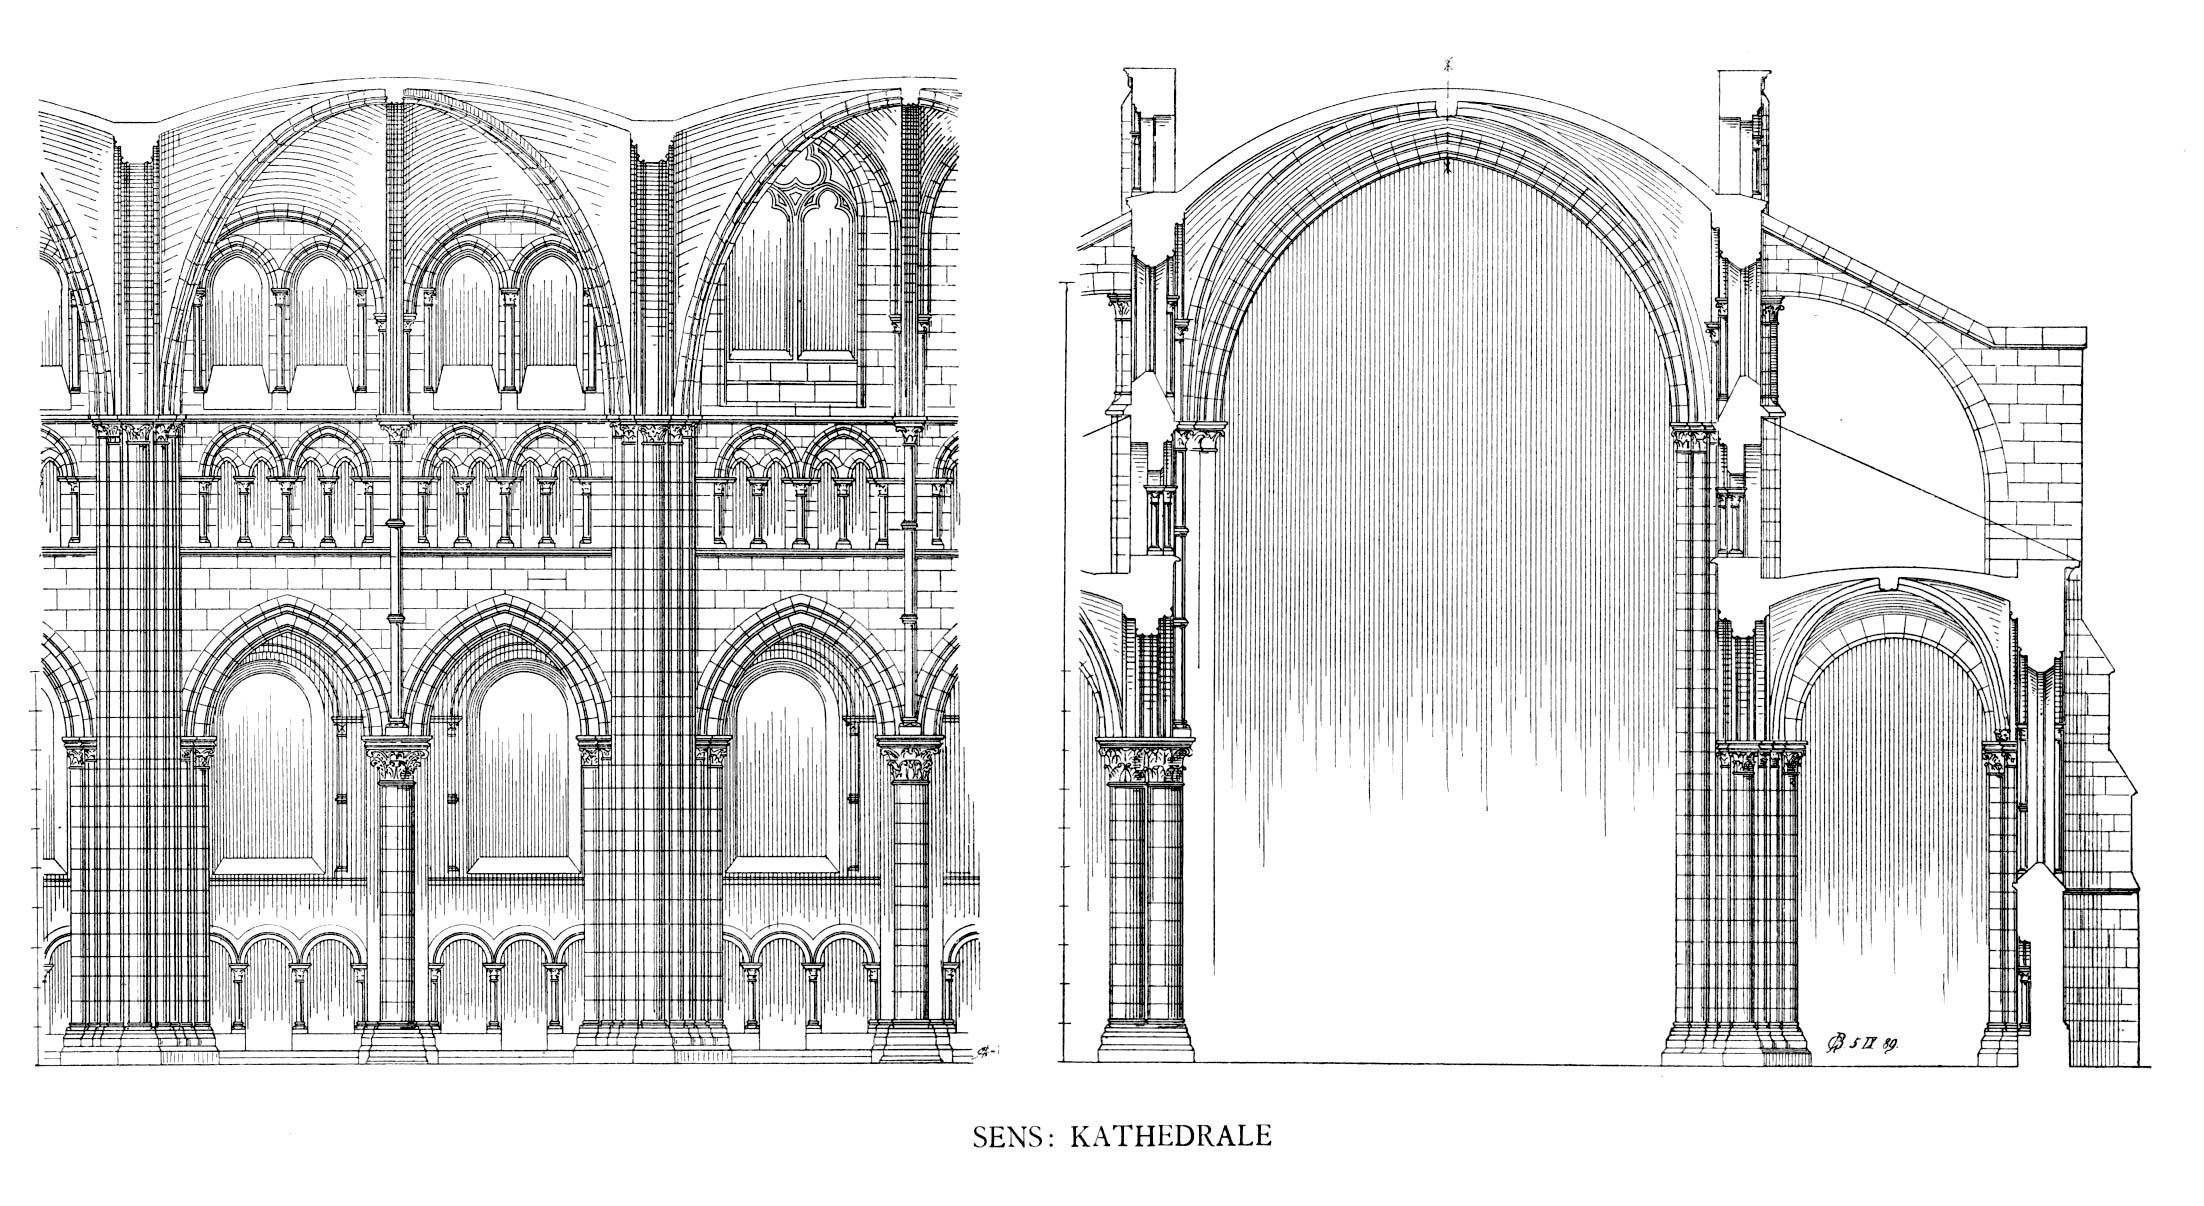 cathedral architecture gothic arches diagram steam turbine process flow 1000 43 images about diagrams on pinterest